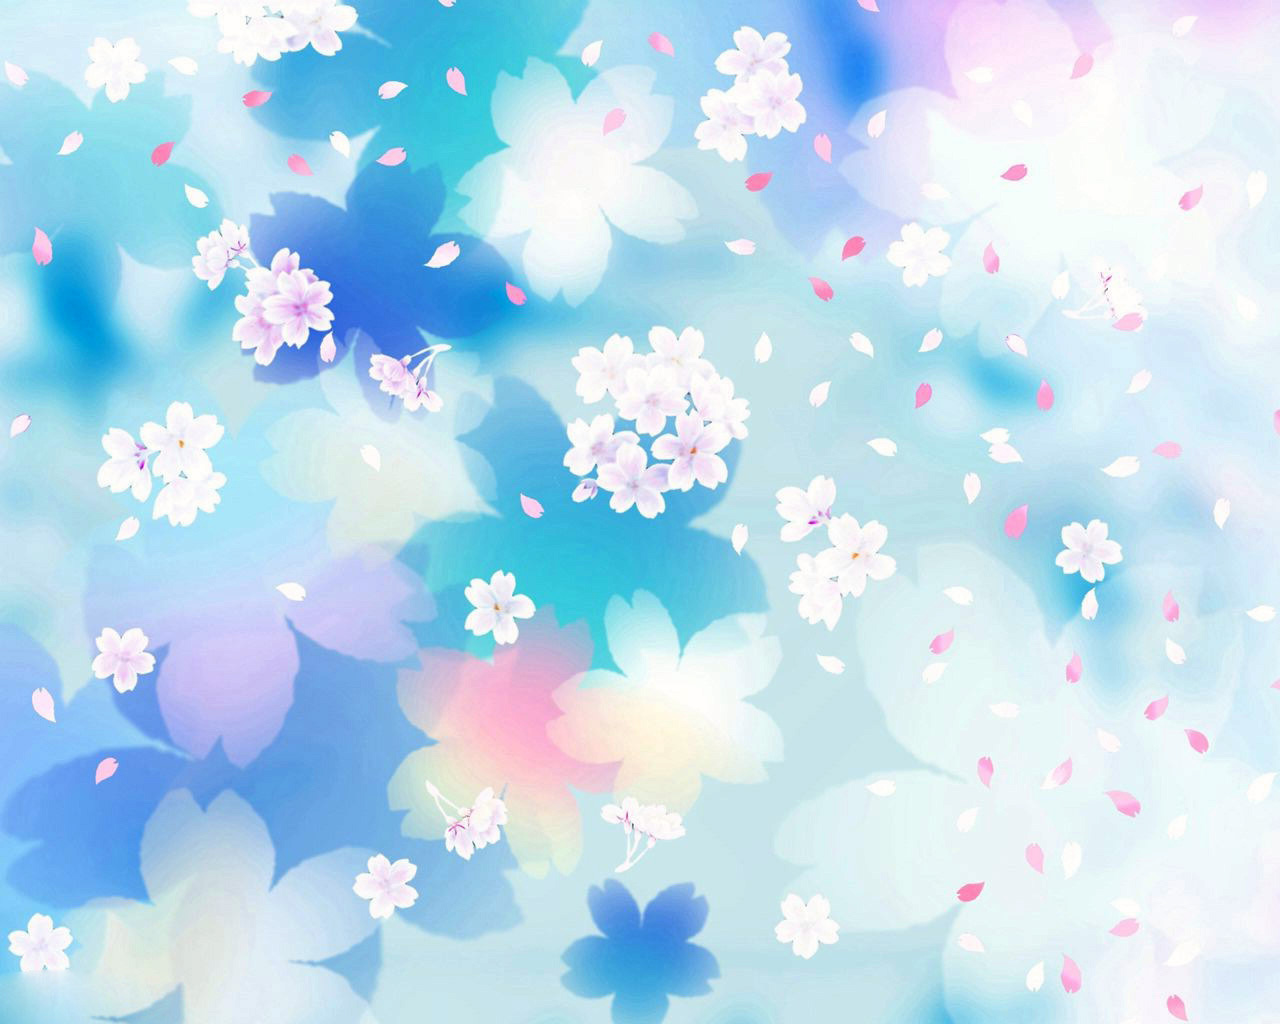 Blur Blue Flowers Backgrounds 154.97 Kb